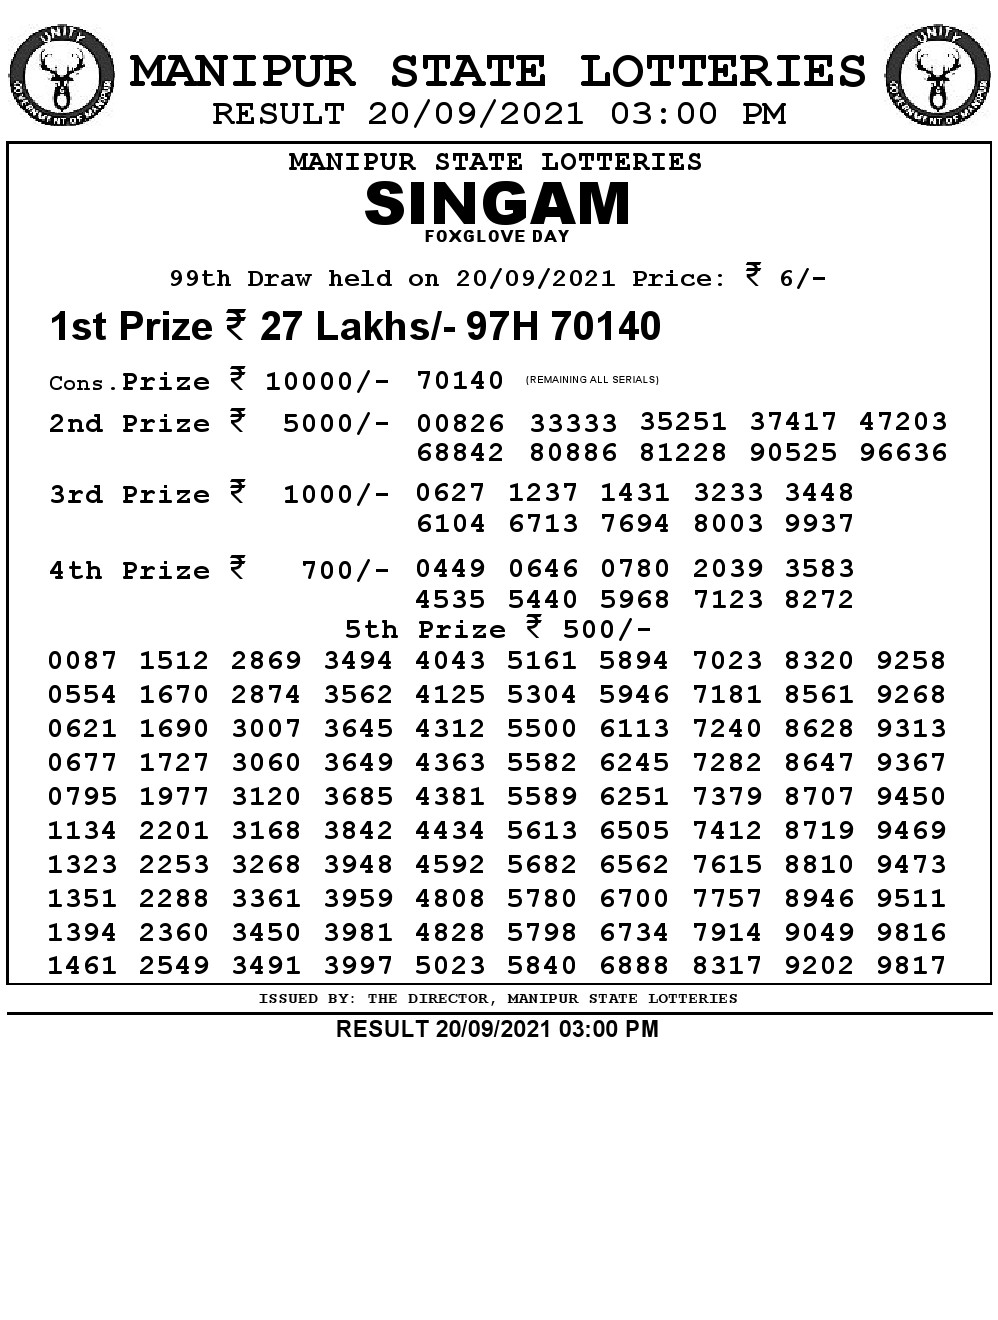 Manipur State Lottery Result 20.09.2021) Out now 03:00 PM pdf download